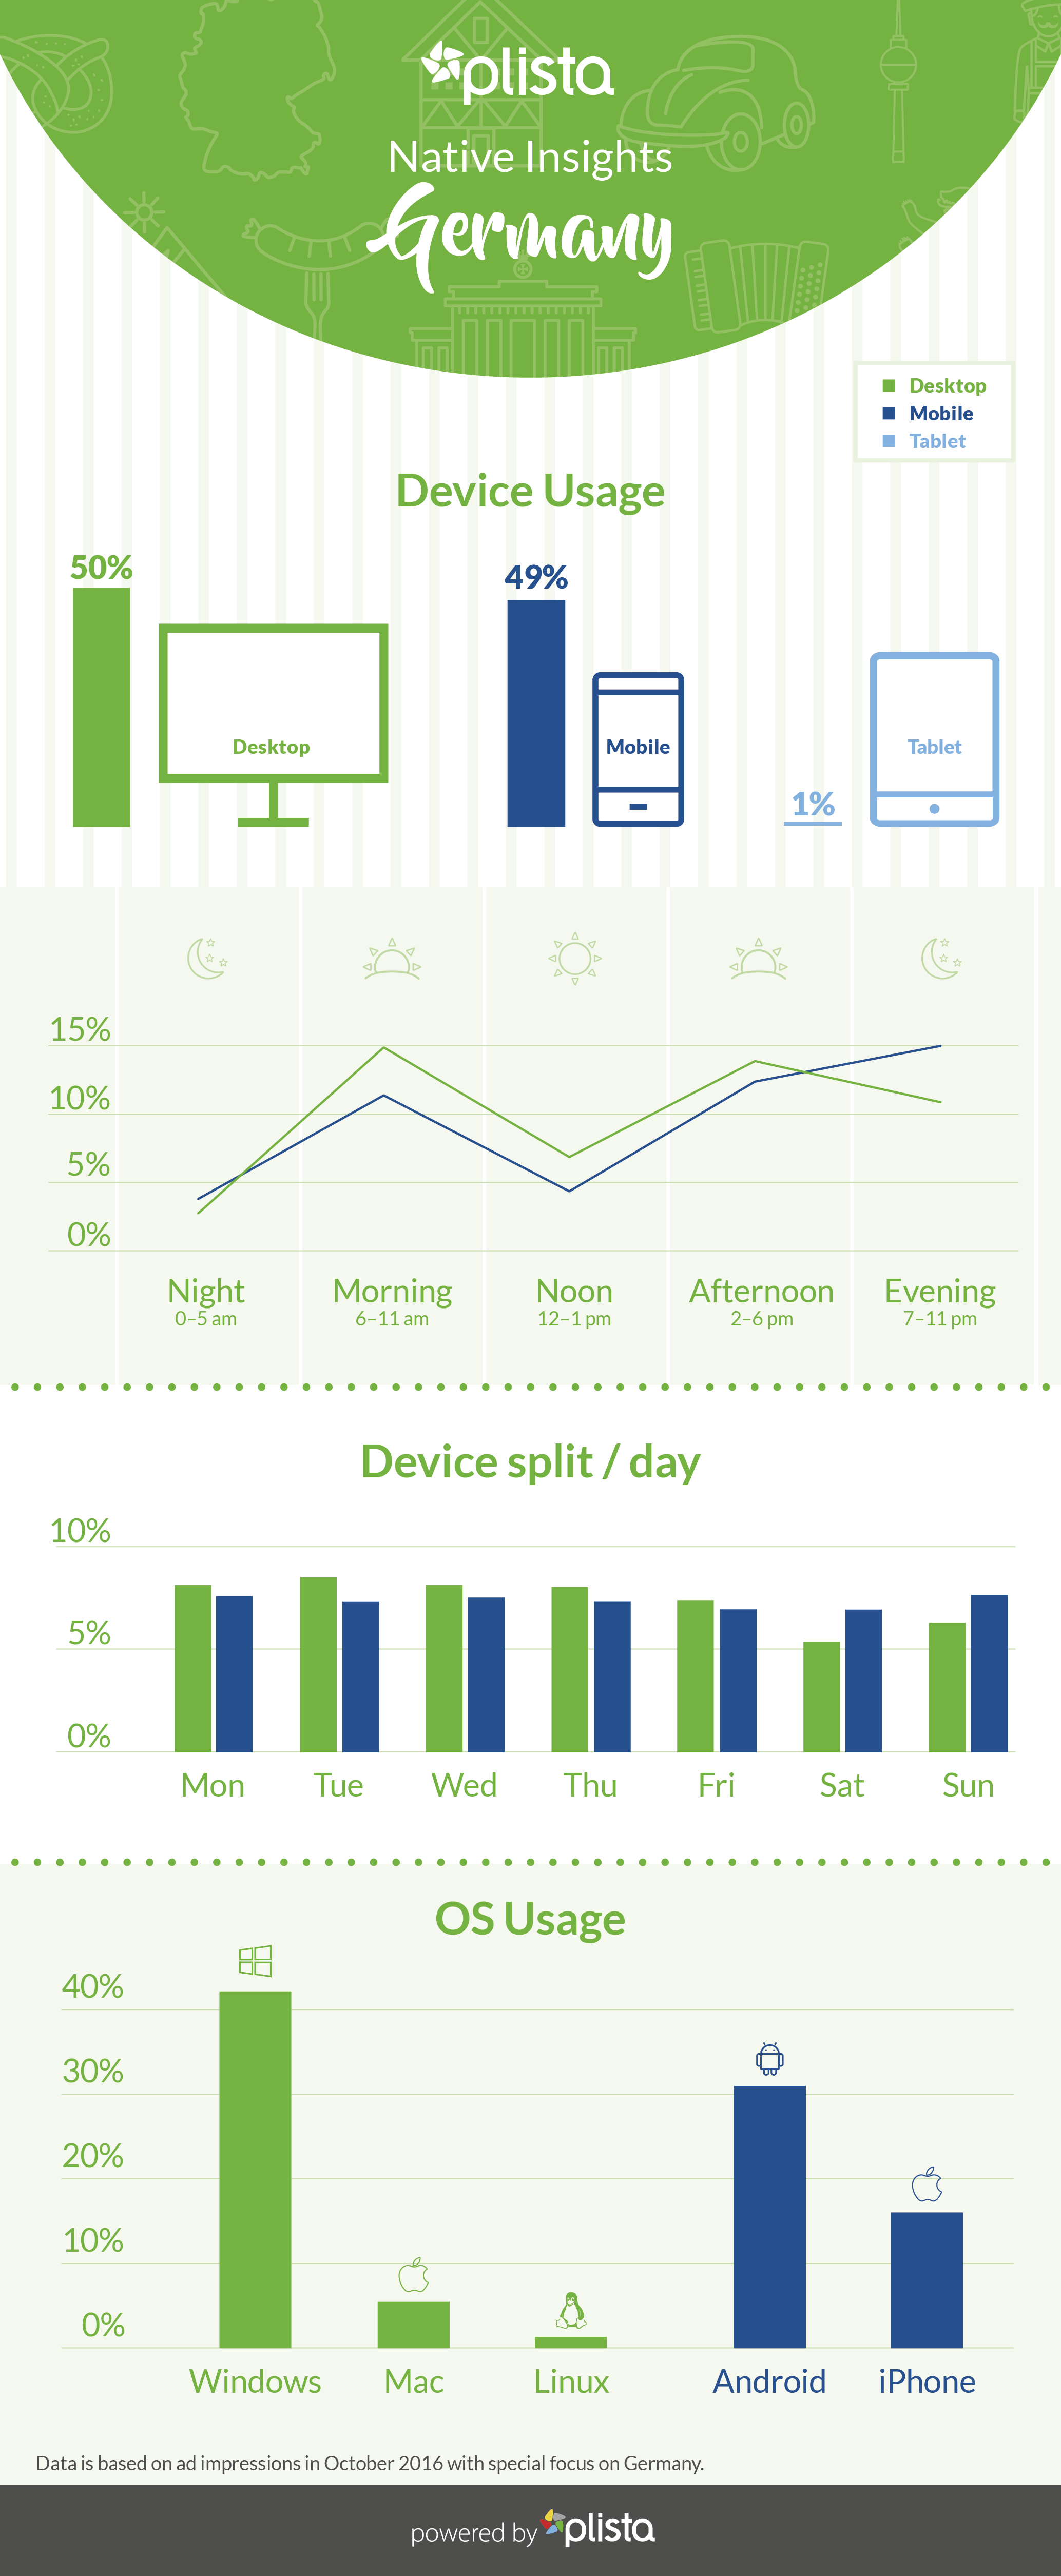 In this image you can see the Ad Consumption Behavior in Germany